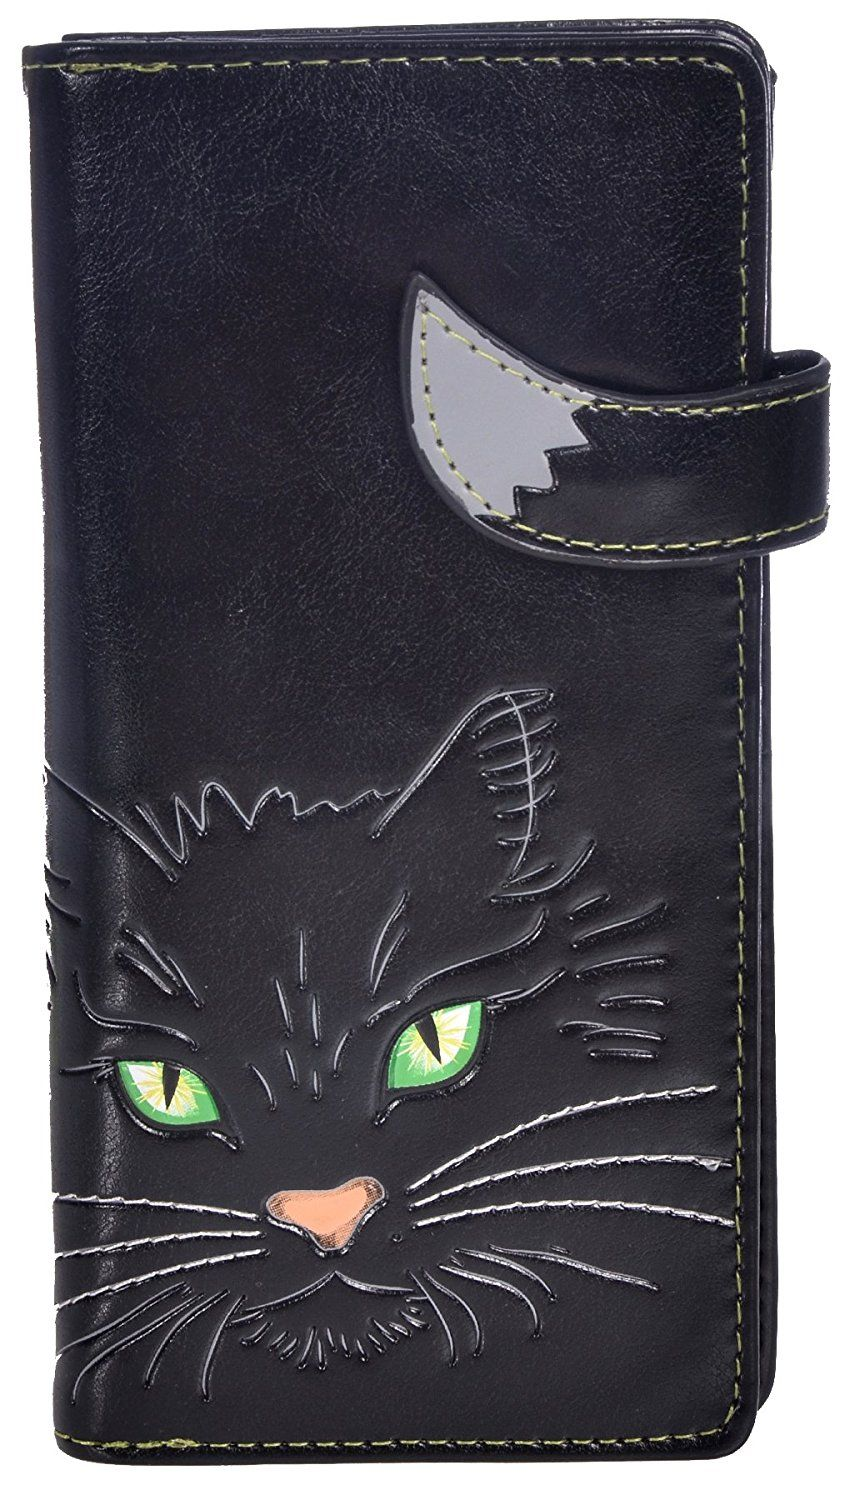 1189b1931dad Shagwear Women's Large Clutch Wallets With Zipper Pocket Cats and ...